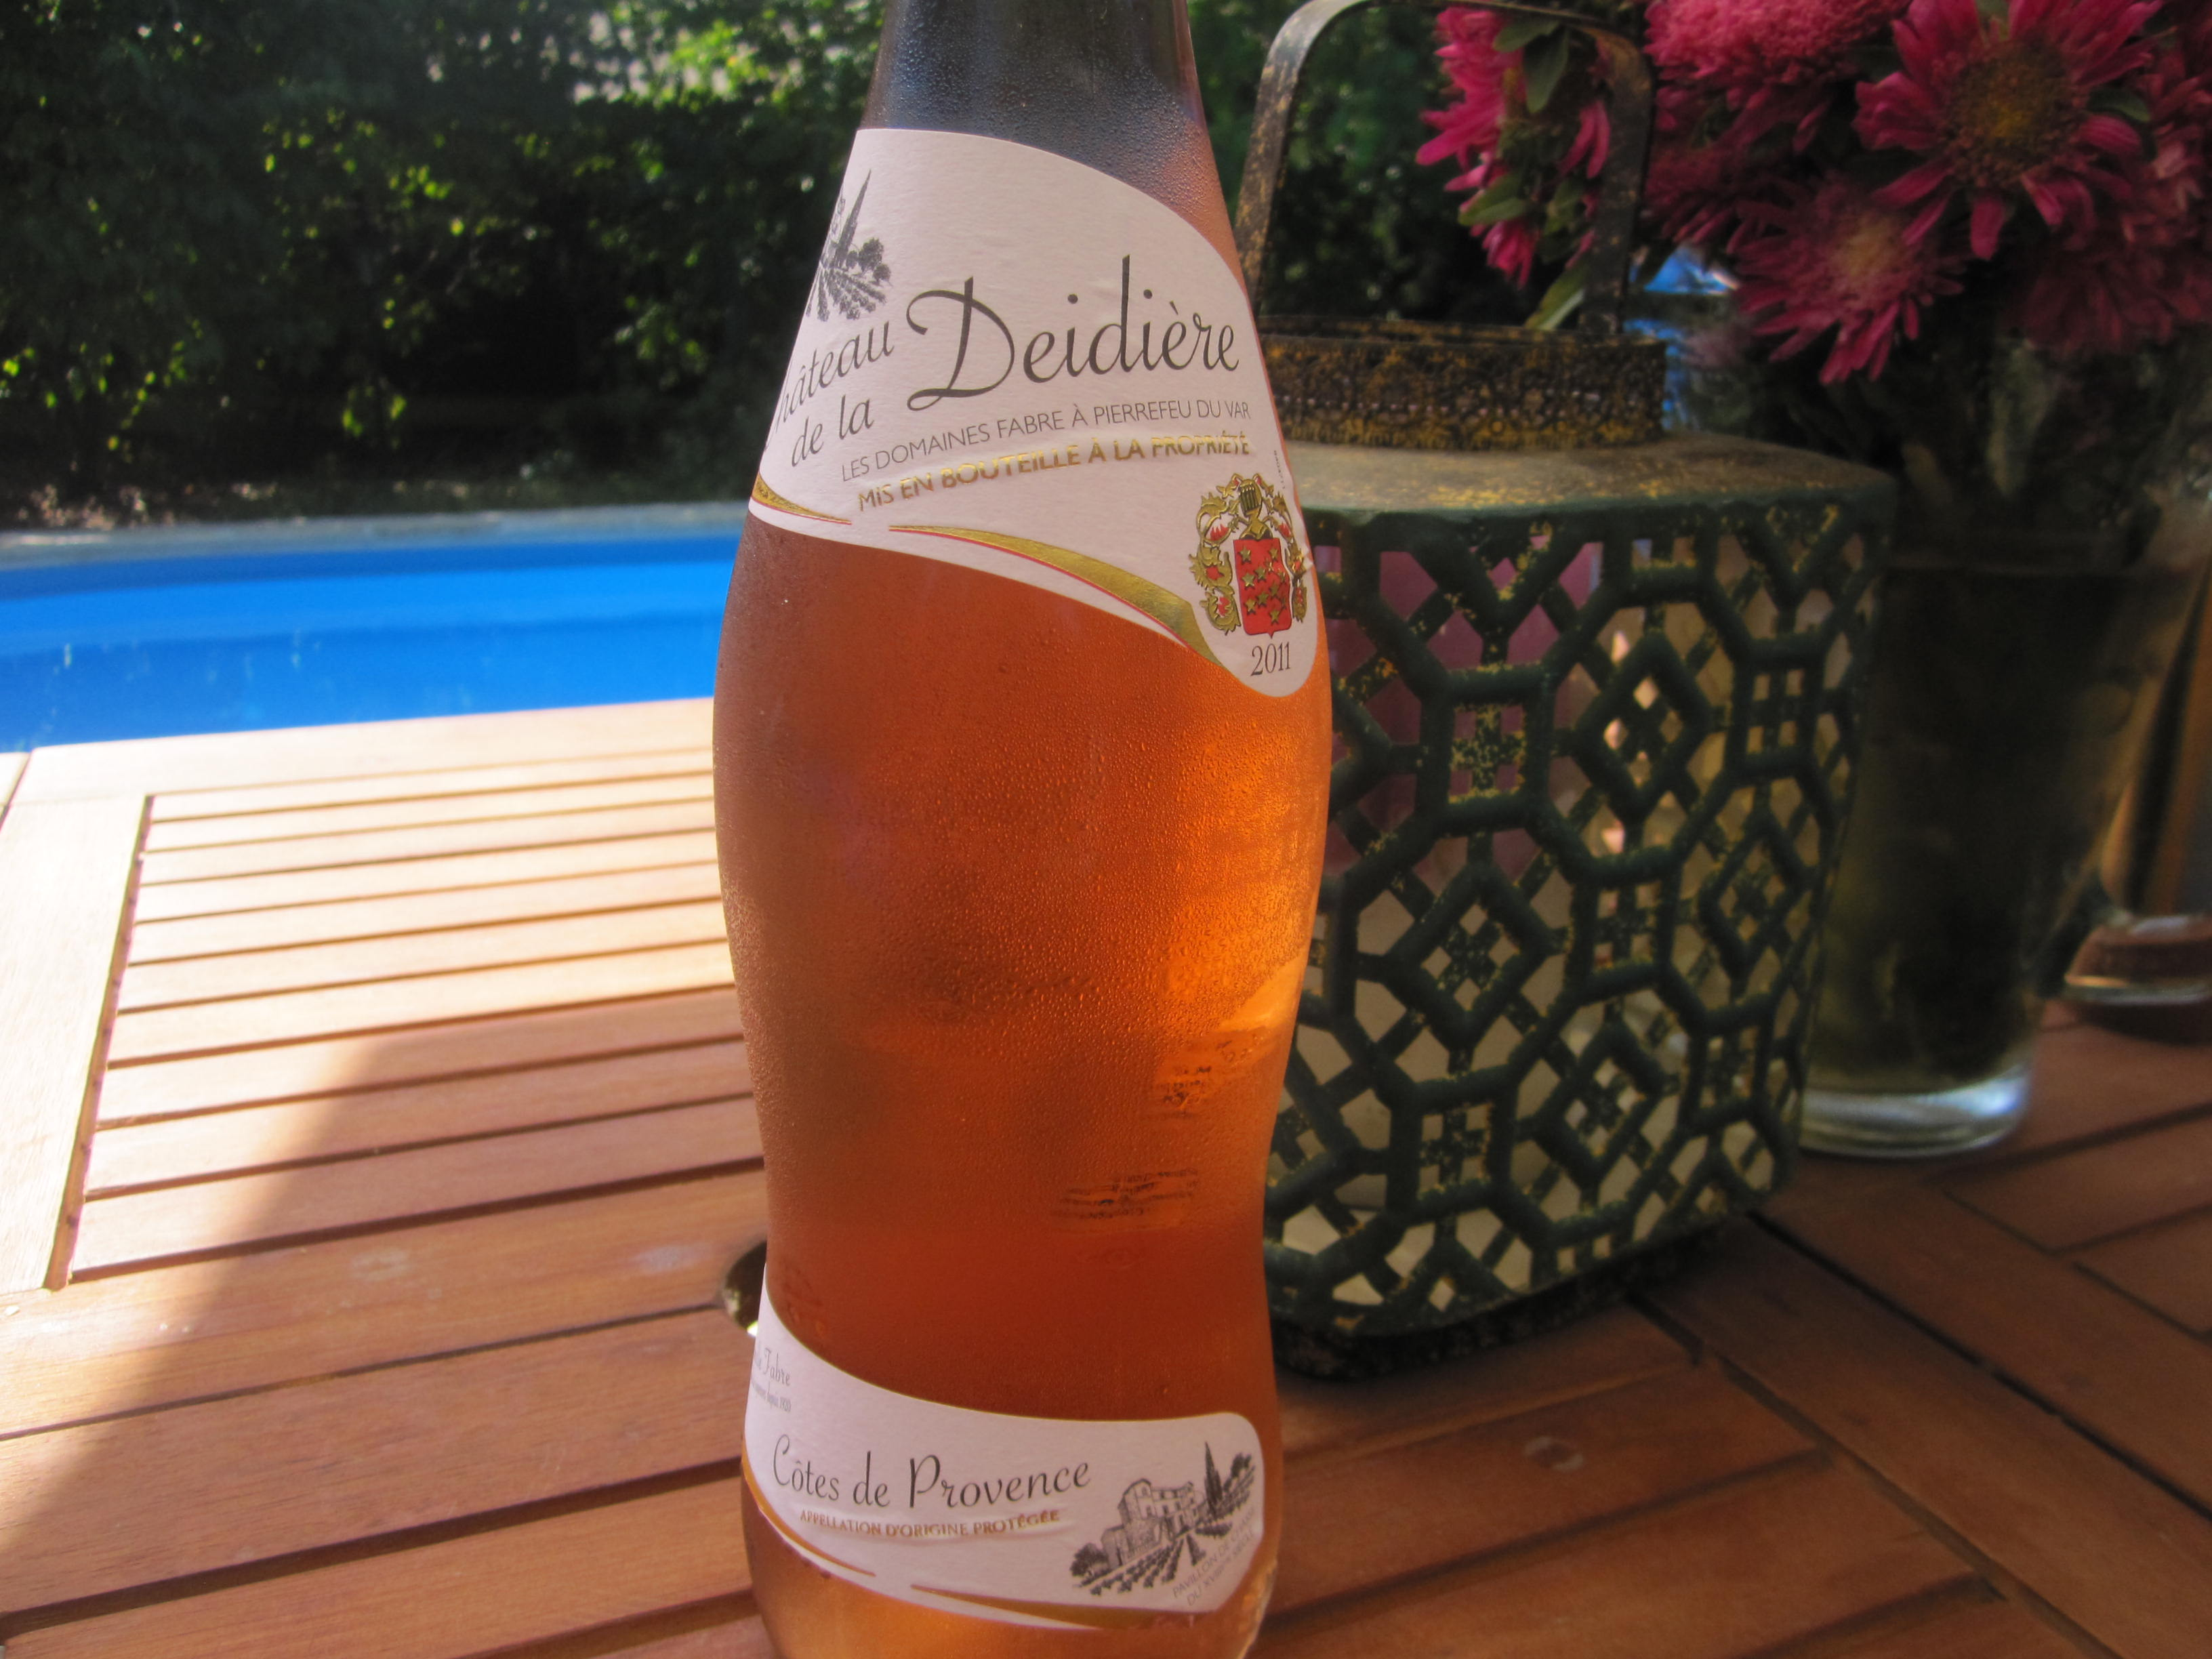 A rosé for a hot day! Recalling summertime..